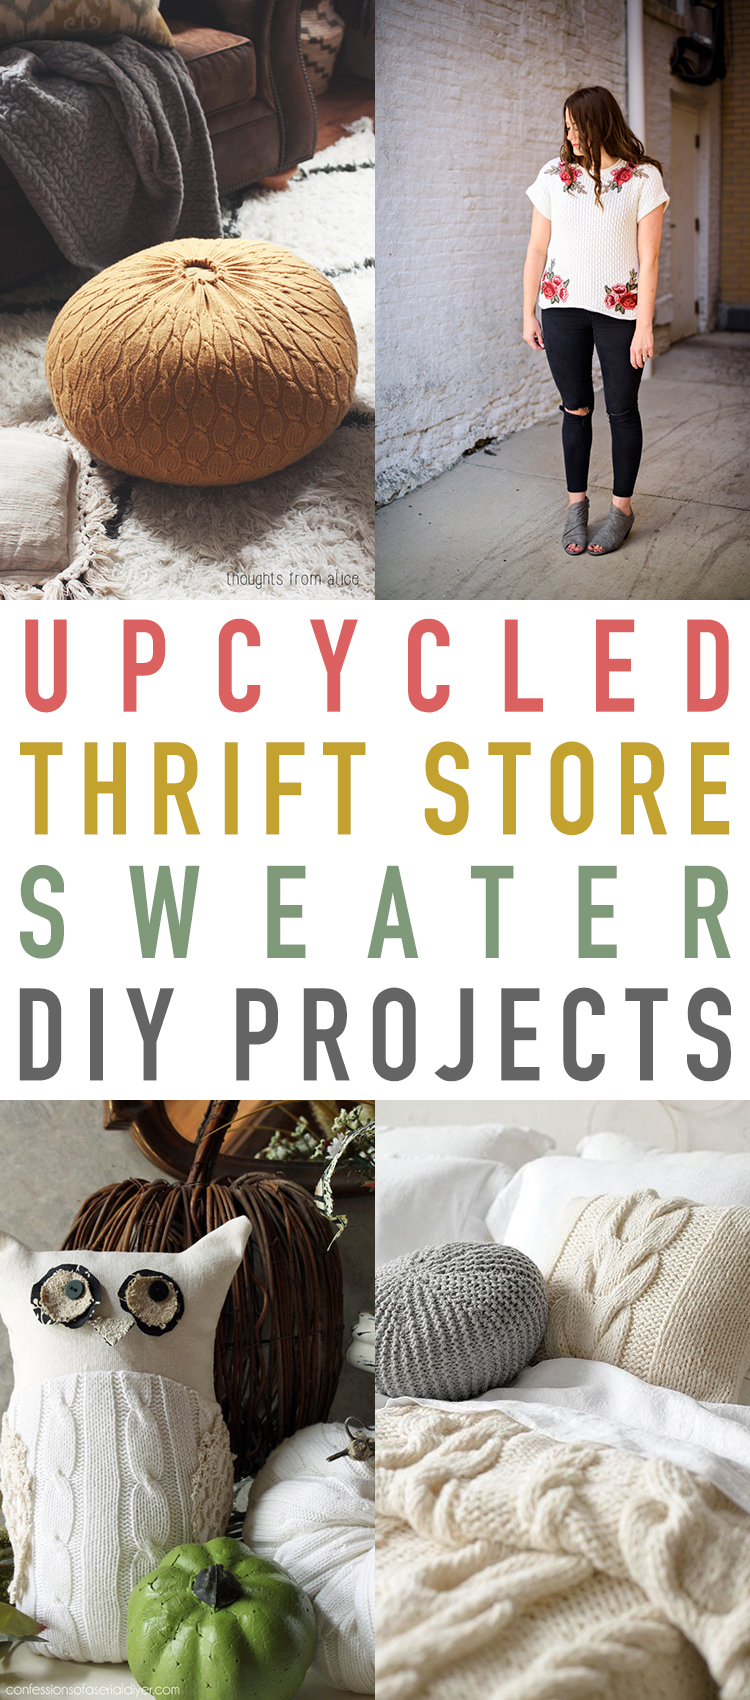 Upcycled Thrift Store Sweater DIY Projects